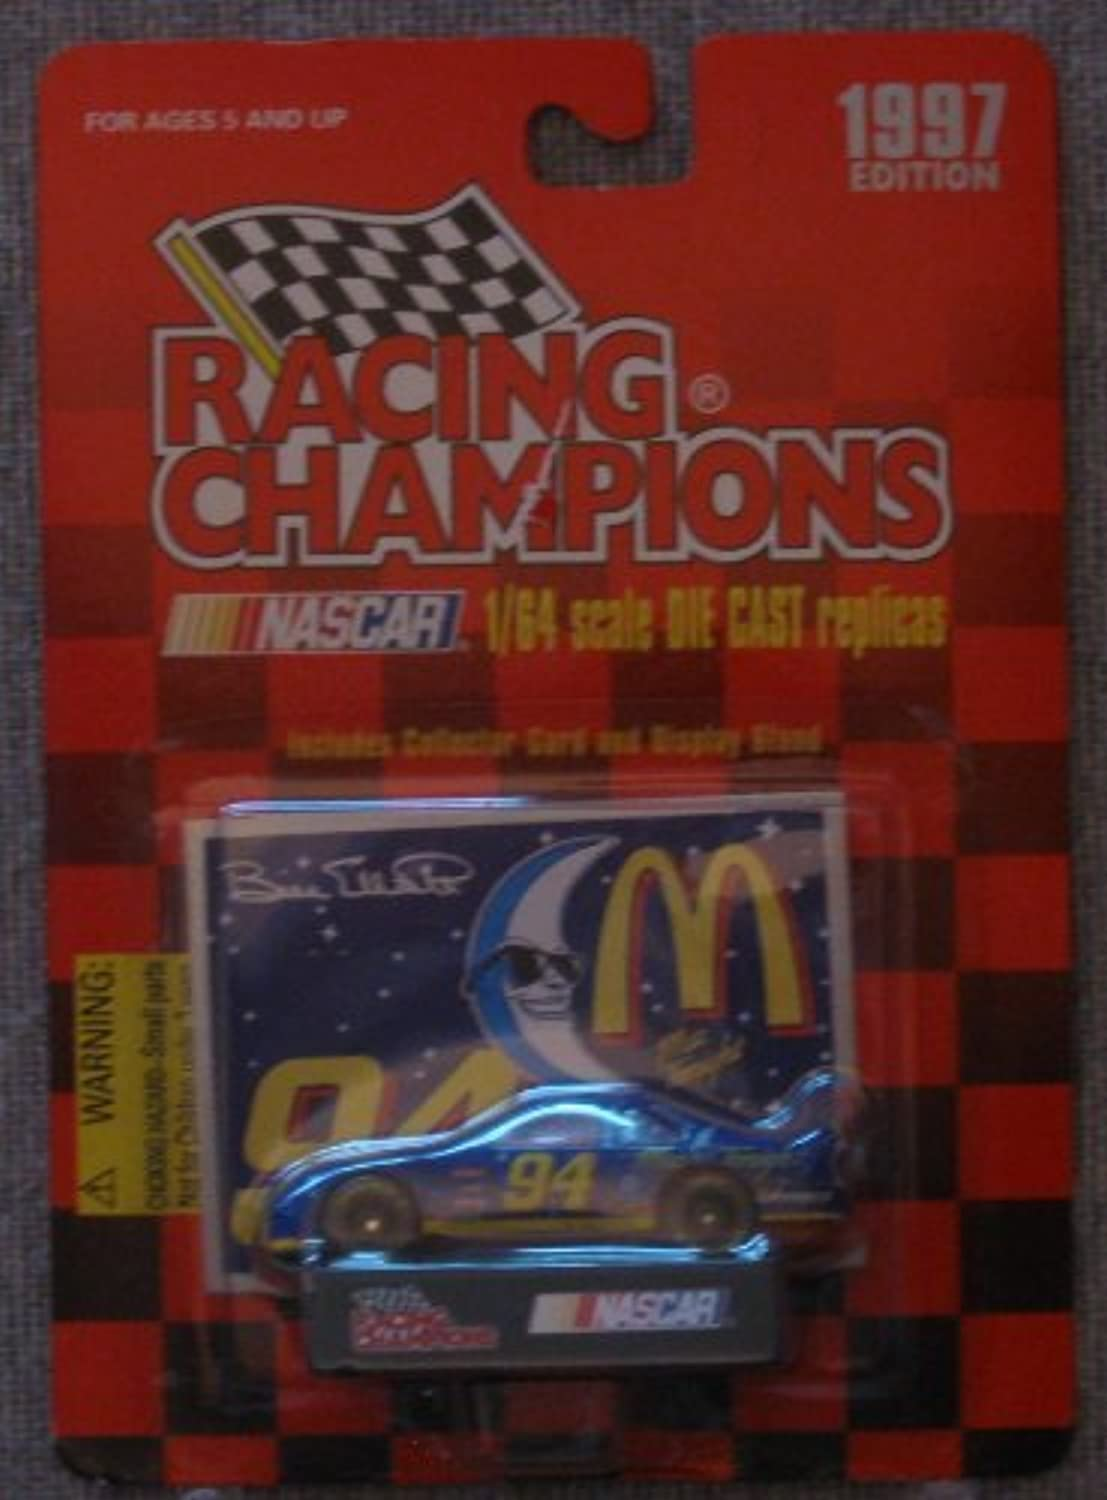 NASCAR  94 Bill Elliott Mac Tonight Racing Champions 1 64 Scale Car by Racing Champions